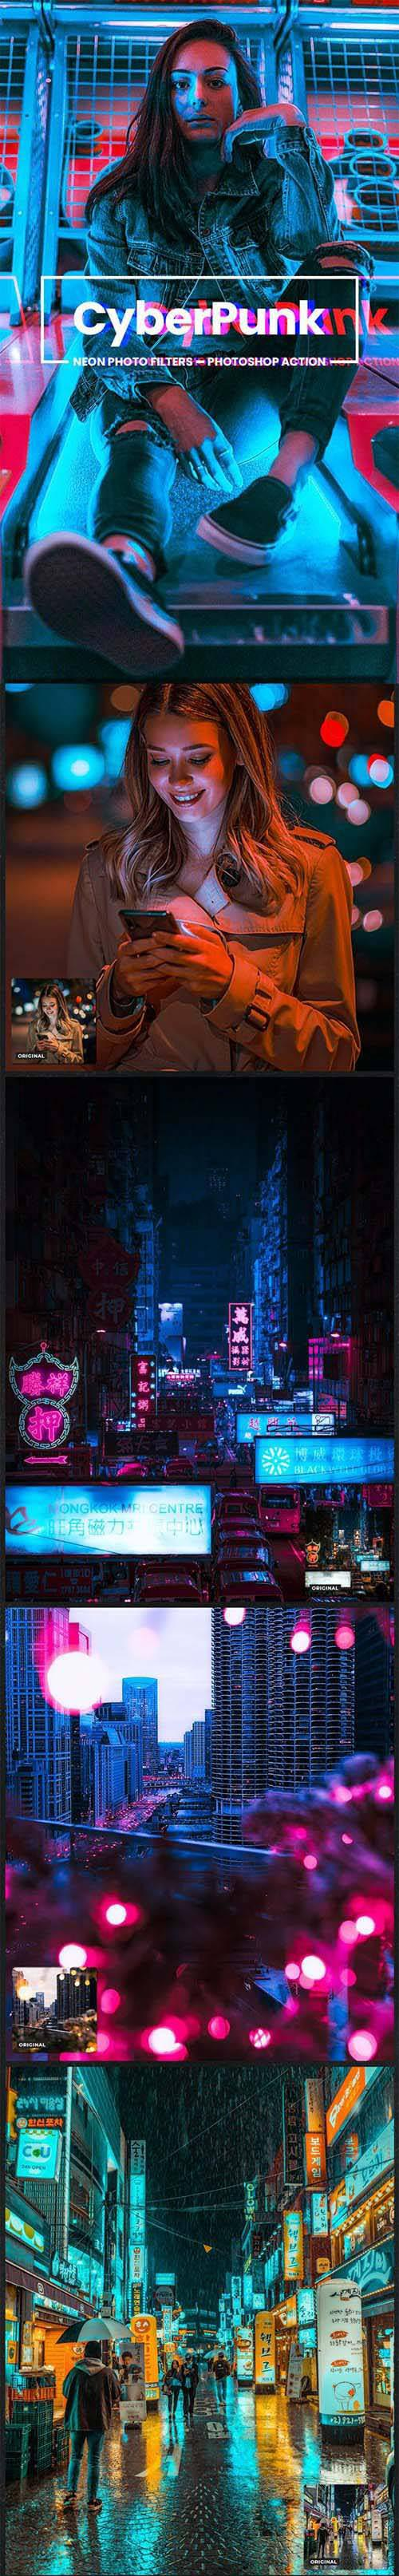 CyberPunk Neon Photo Filters Photoshop Action 26775858